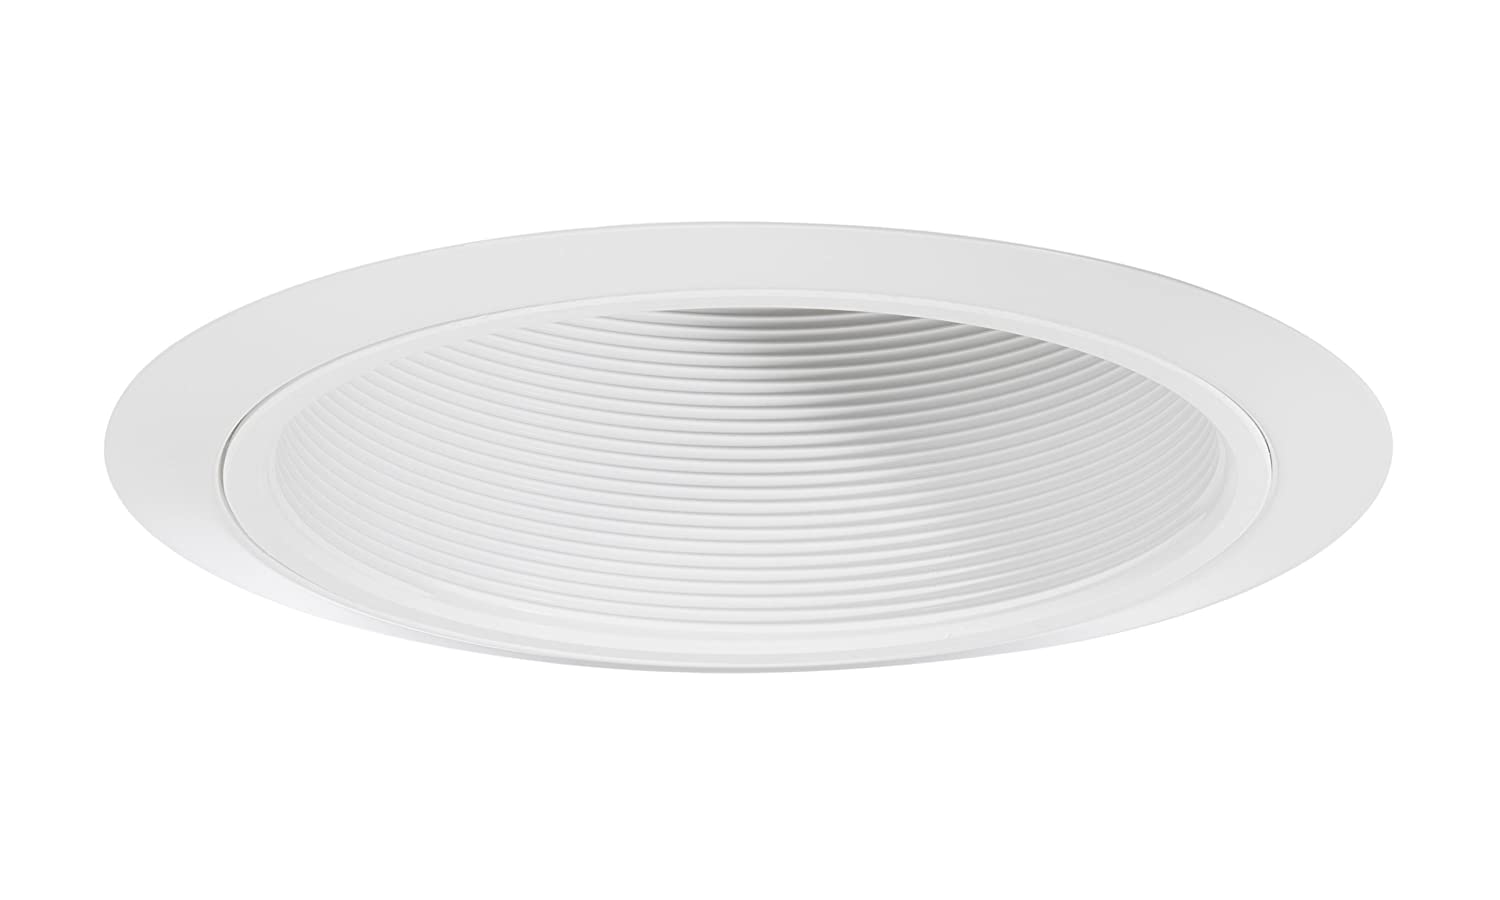 Juno Lighting 25W-WH 6-Inch Straight Downlight Baffle White with White Trim - Recessed Light Fixture Trims - Amazon.com  sc 1 st  Amazon.com & Juno Lighting 25W-WH 6-Inch Straight Downlight Baffle White with ... azcodes.com